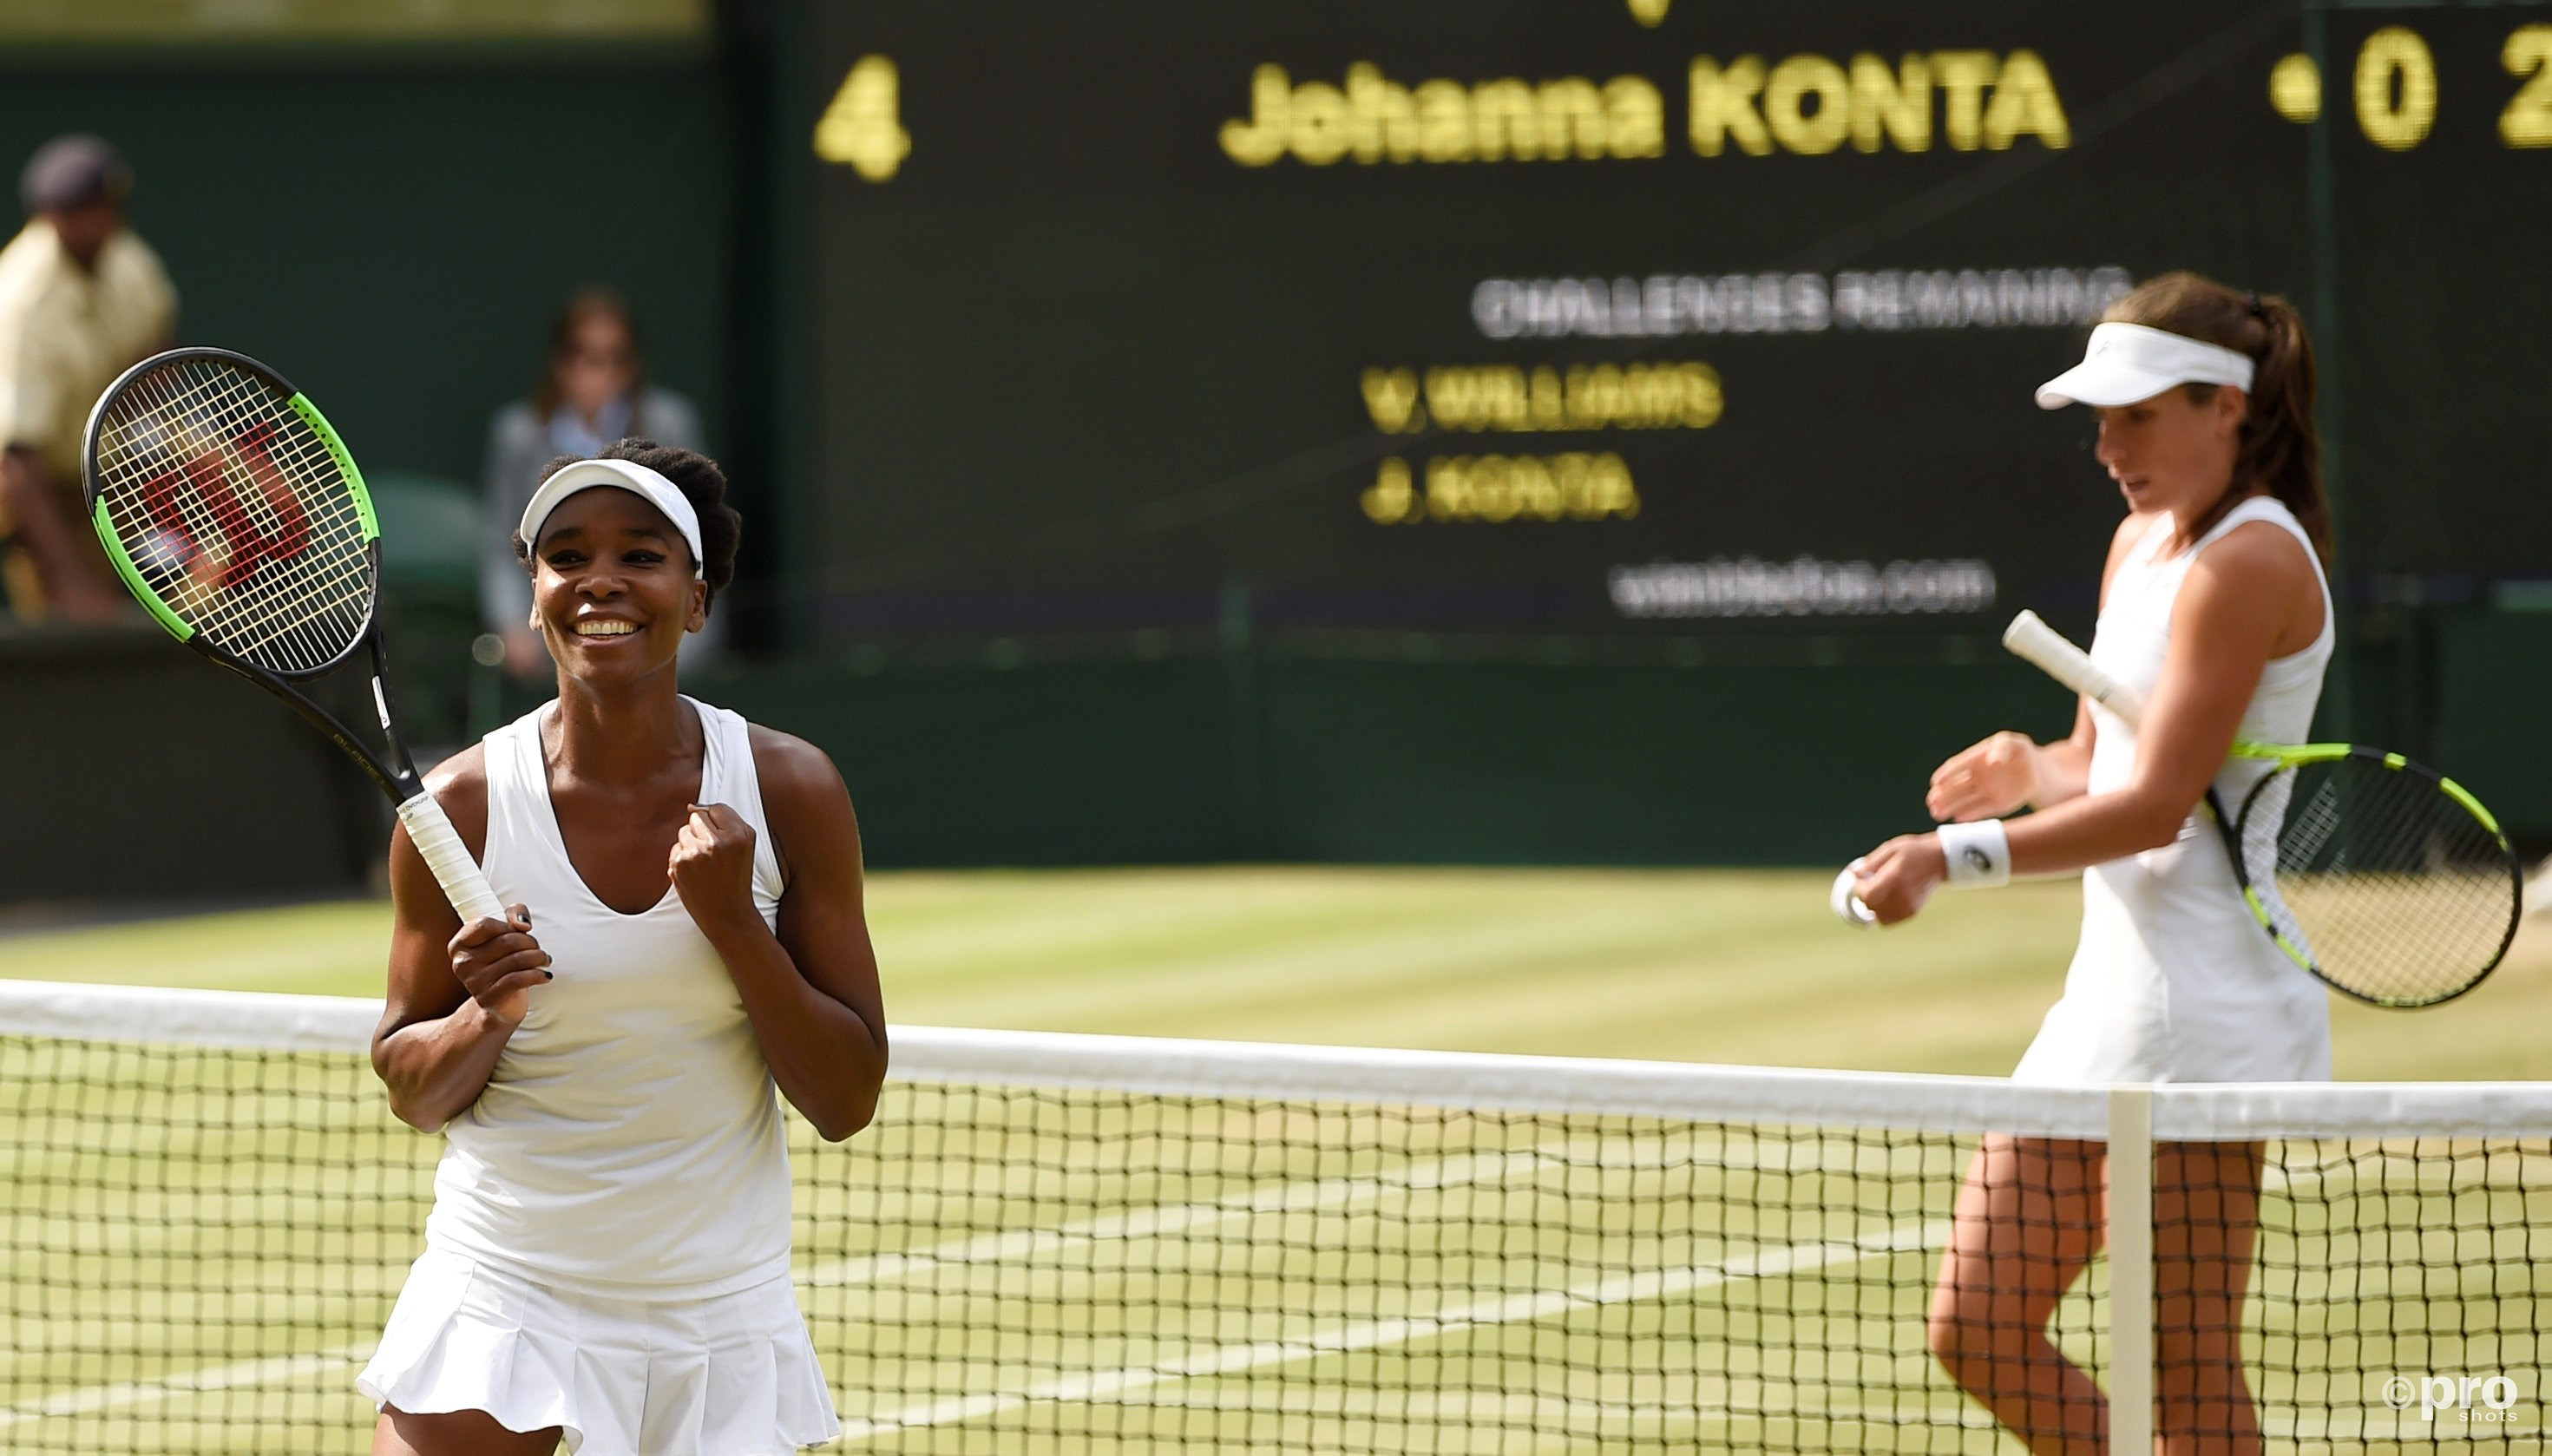 Williams viert de zege op Konta (Pro Shots/Action Images)